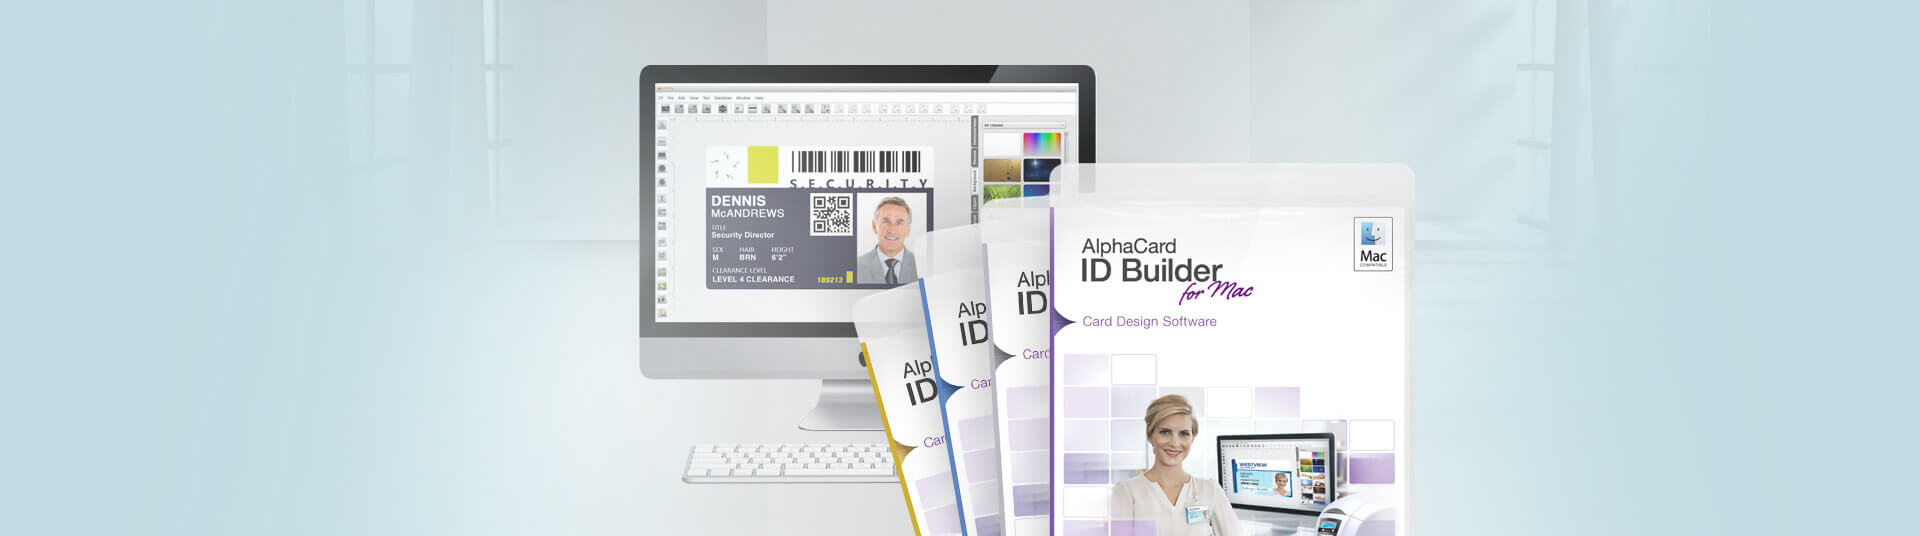 ID Builder for Mac